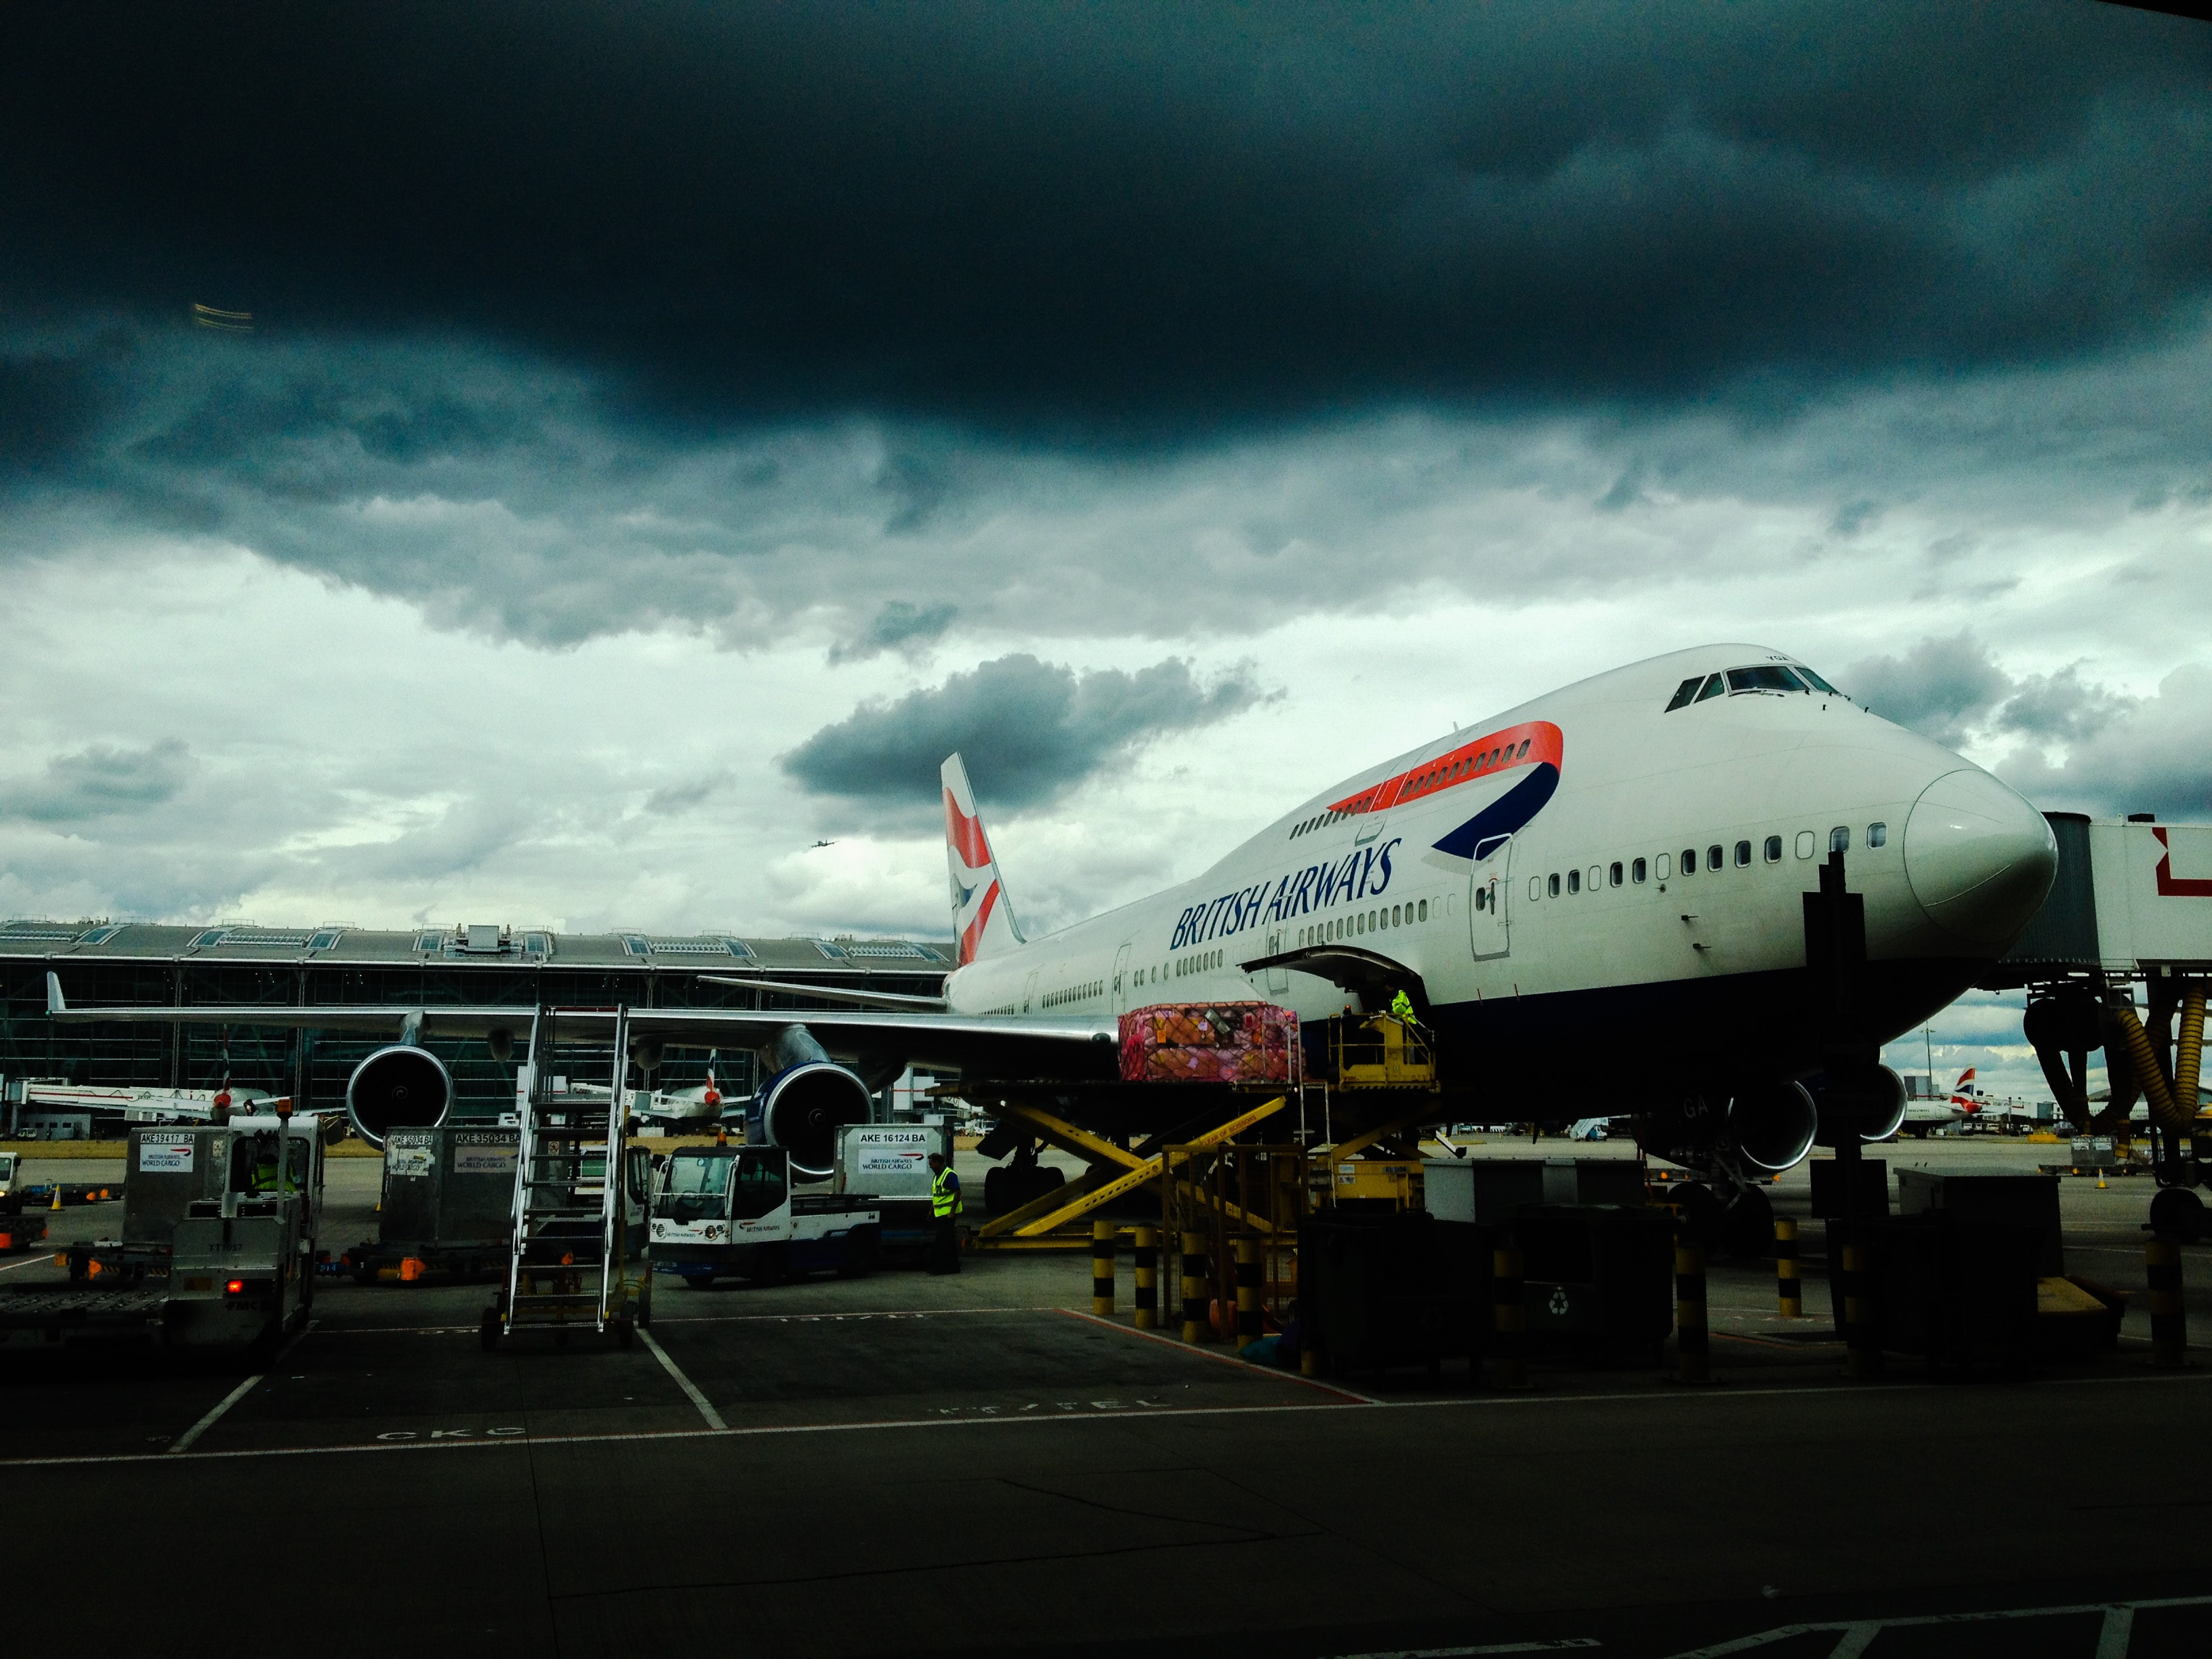 British Airways airplane on the ground of an airport under dark cloudy skies